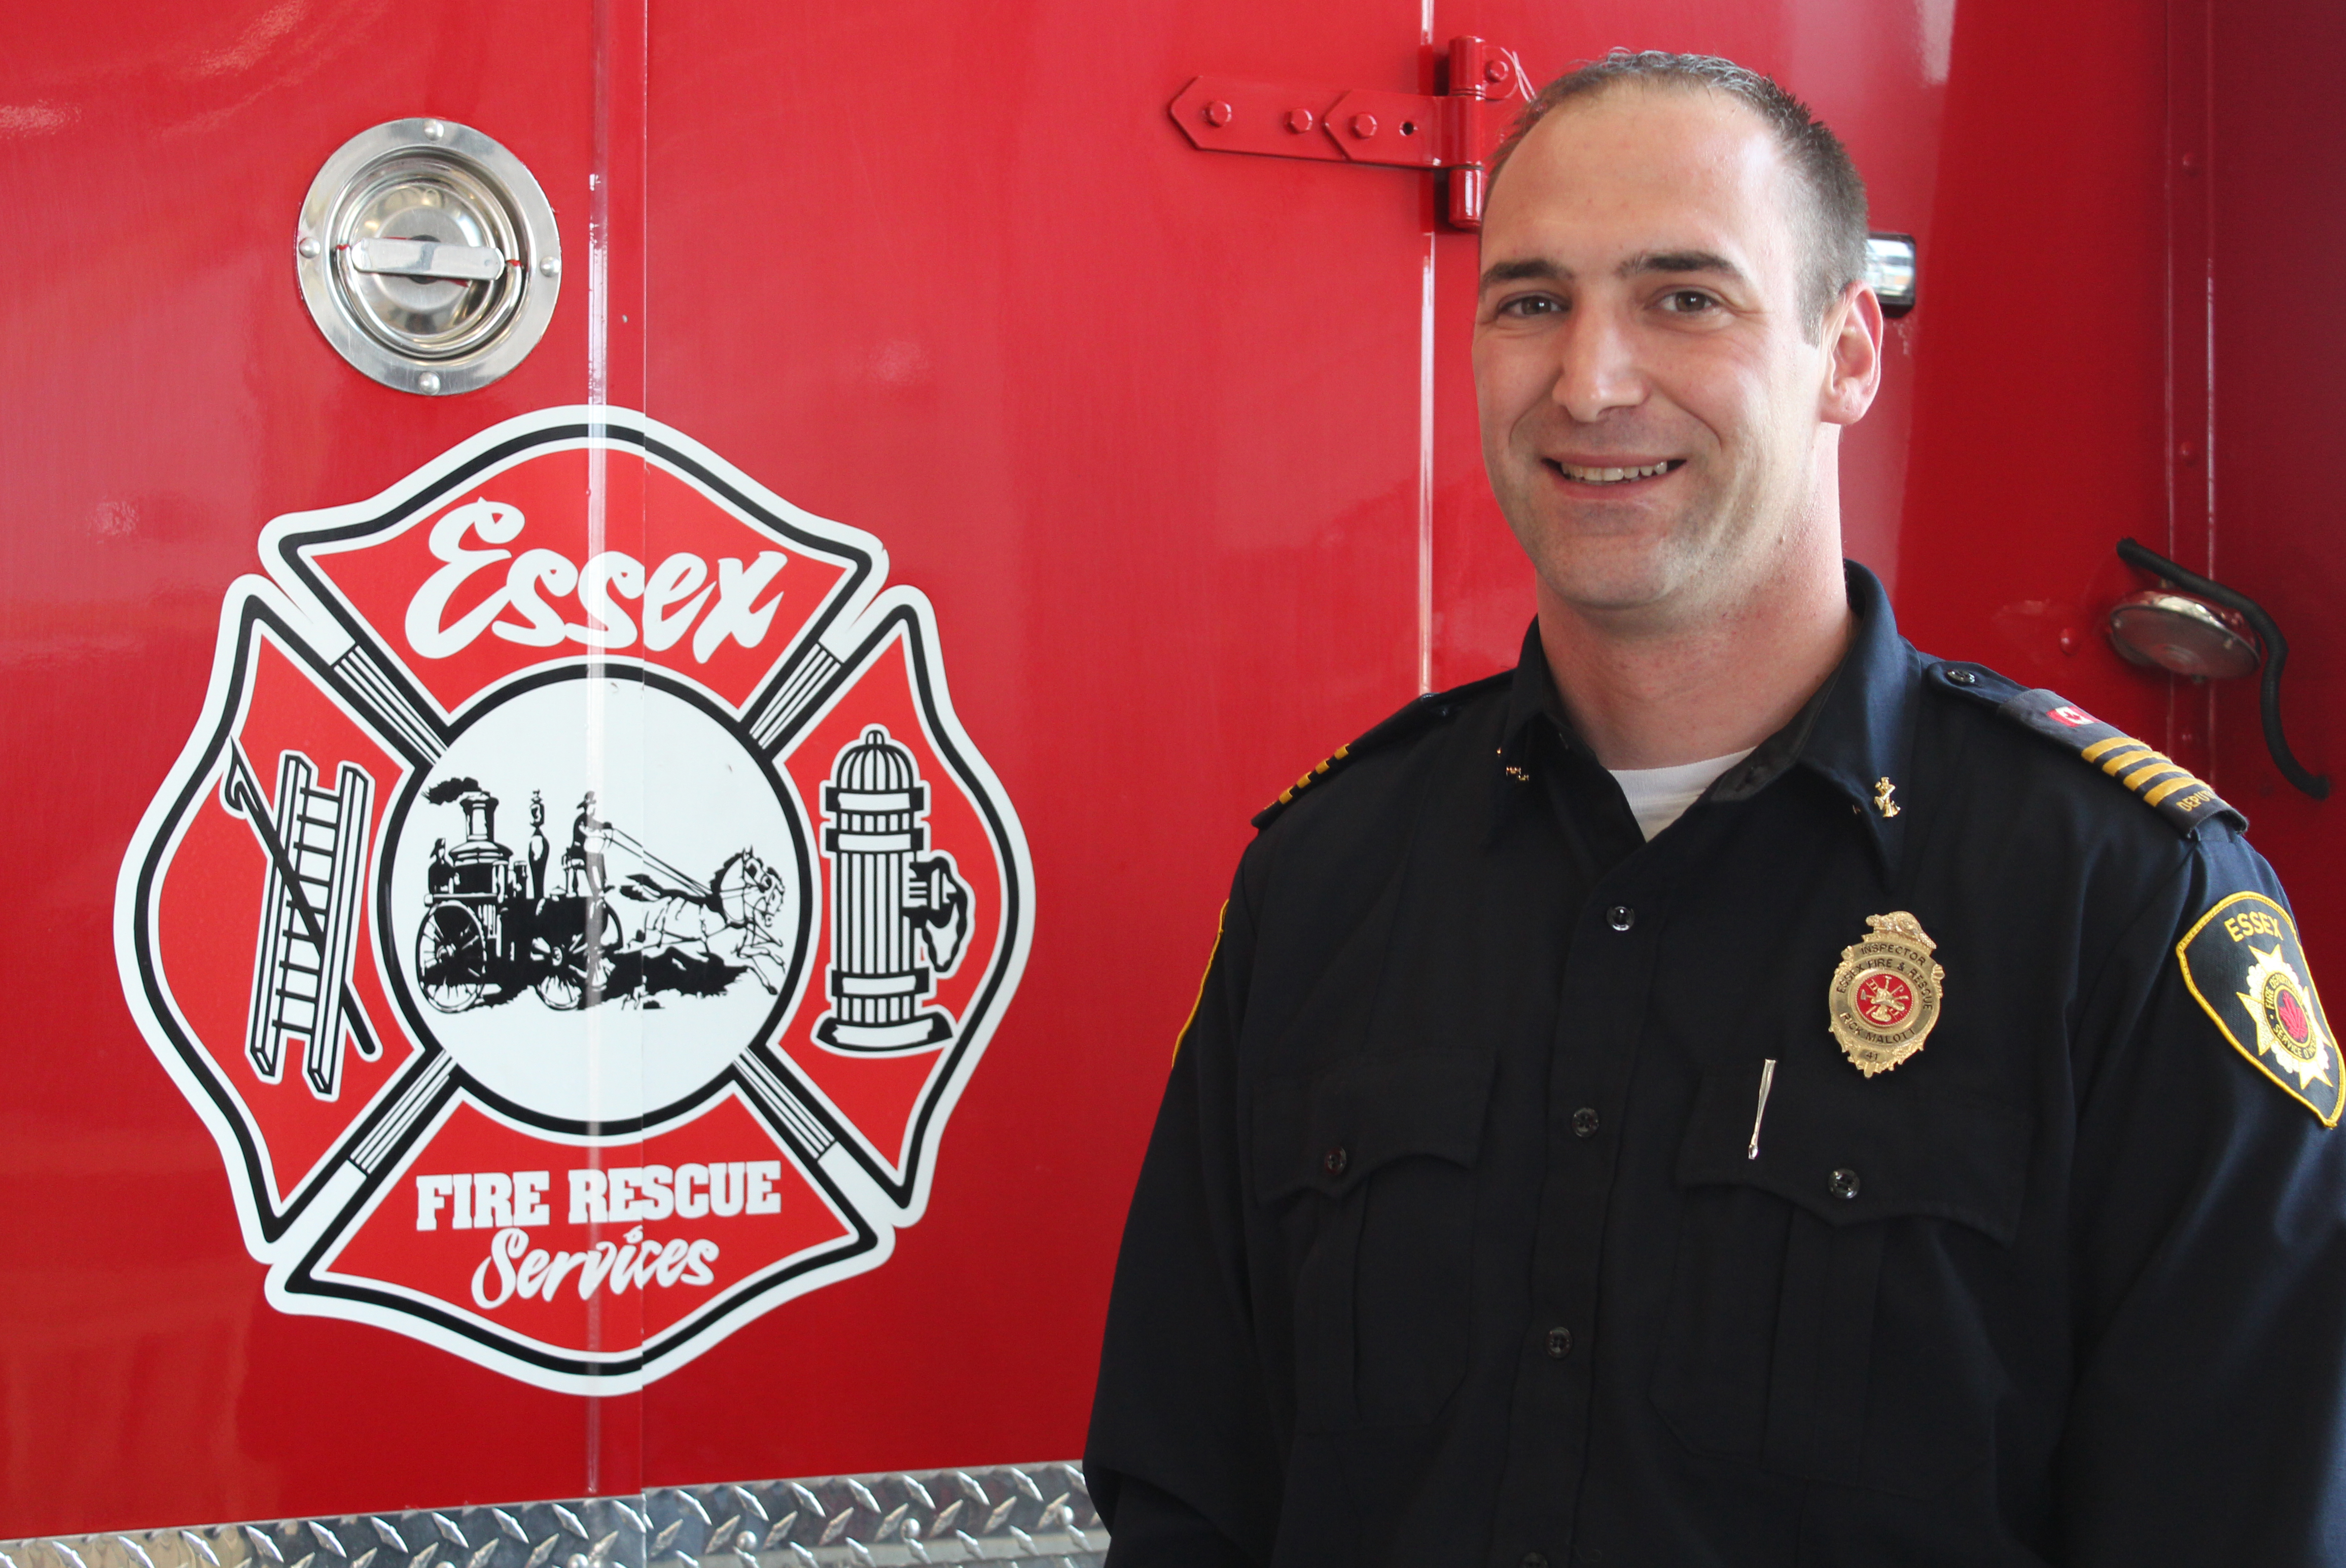 Photo of Essex Fire and Rescue Services deputy fire chief Rick Malott courtesy of the Town of Essex.